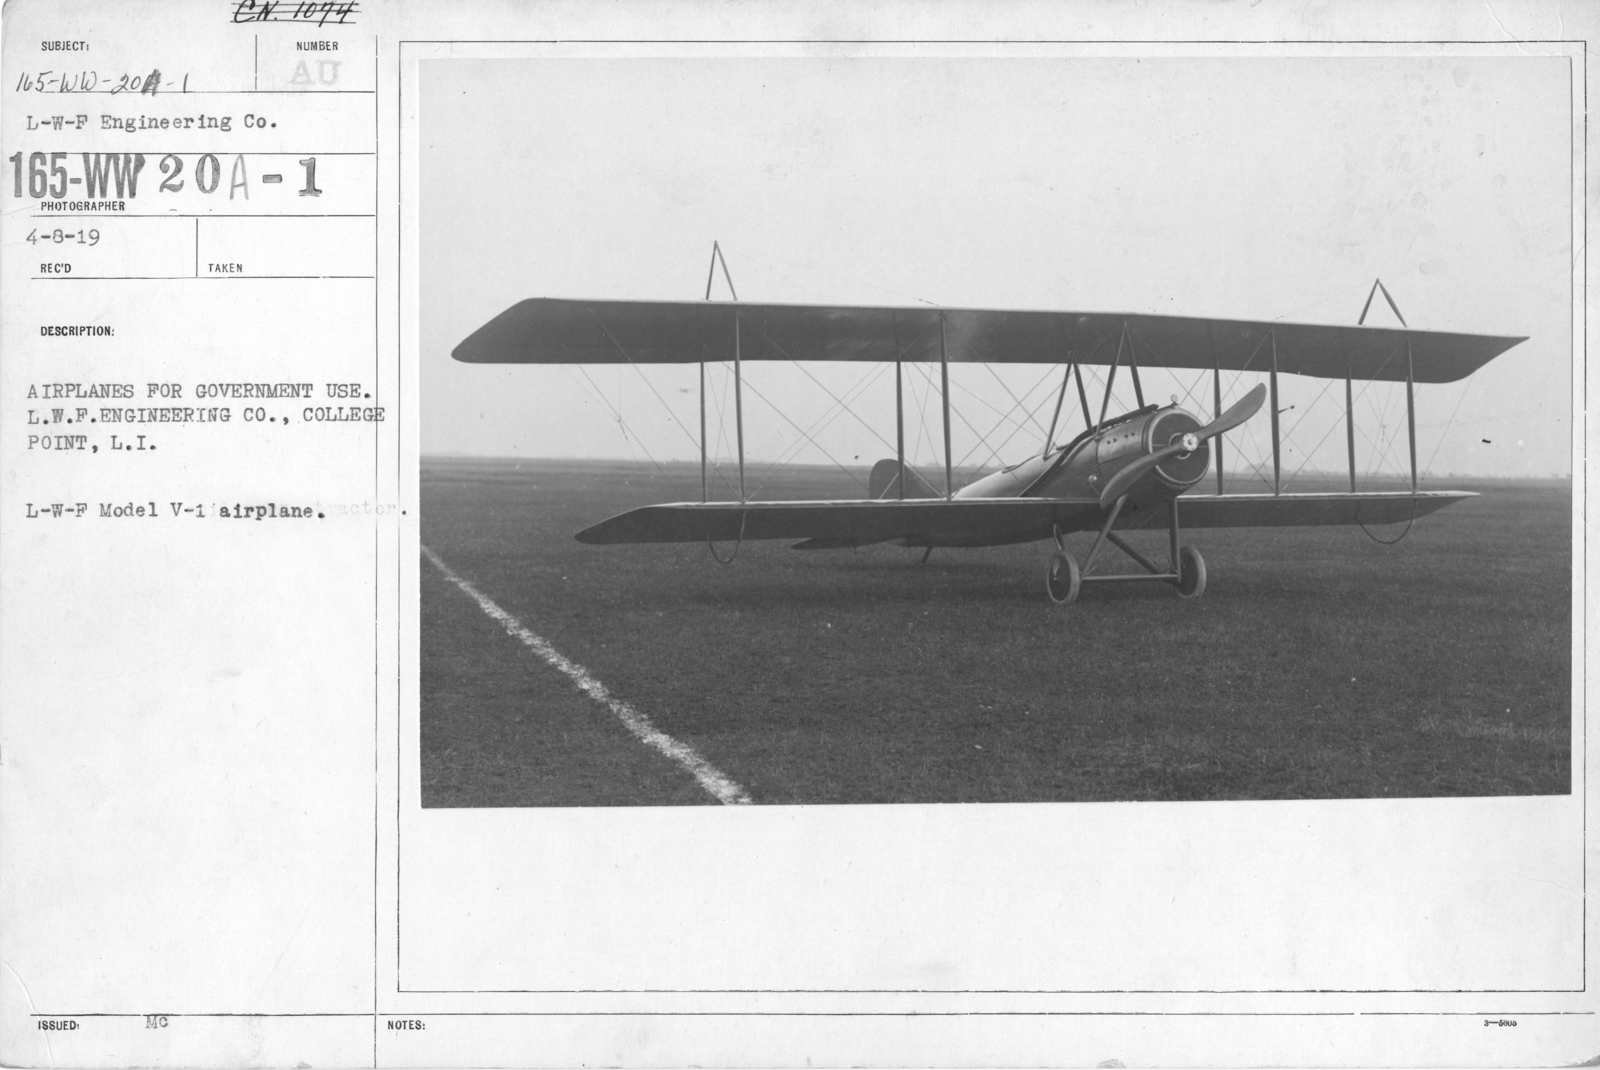 Airplanes - Types - Airplanes for government use. L.W.F. Engineering Co., College Point, L.I. L-W-F Model V-1 airplane